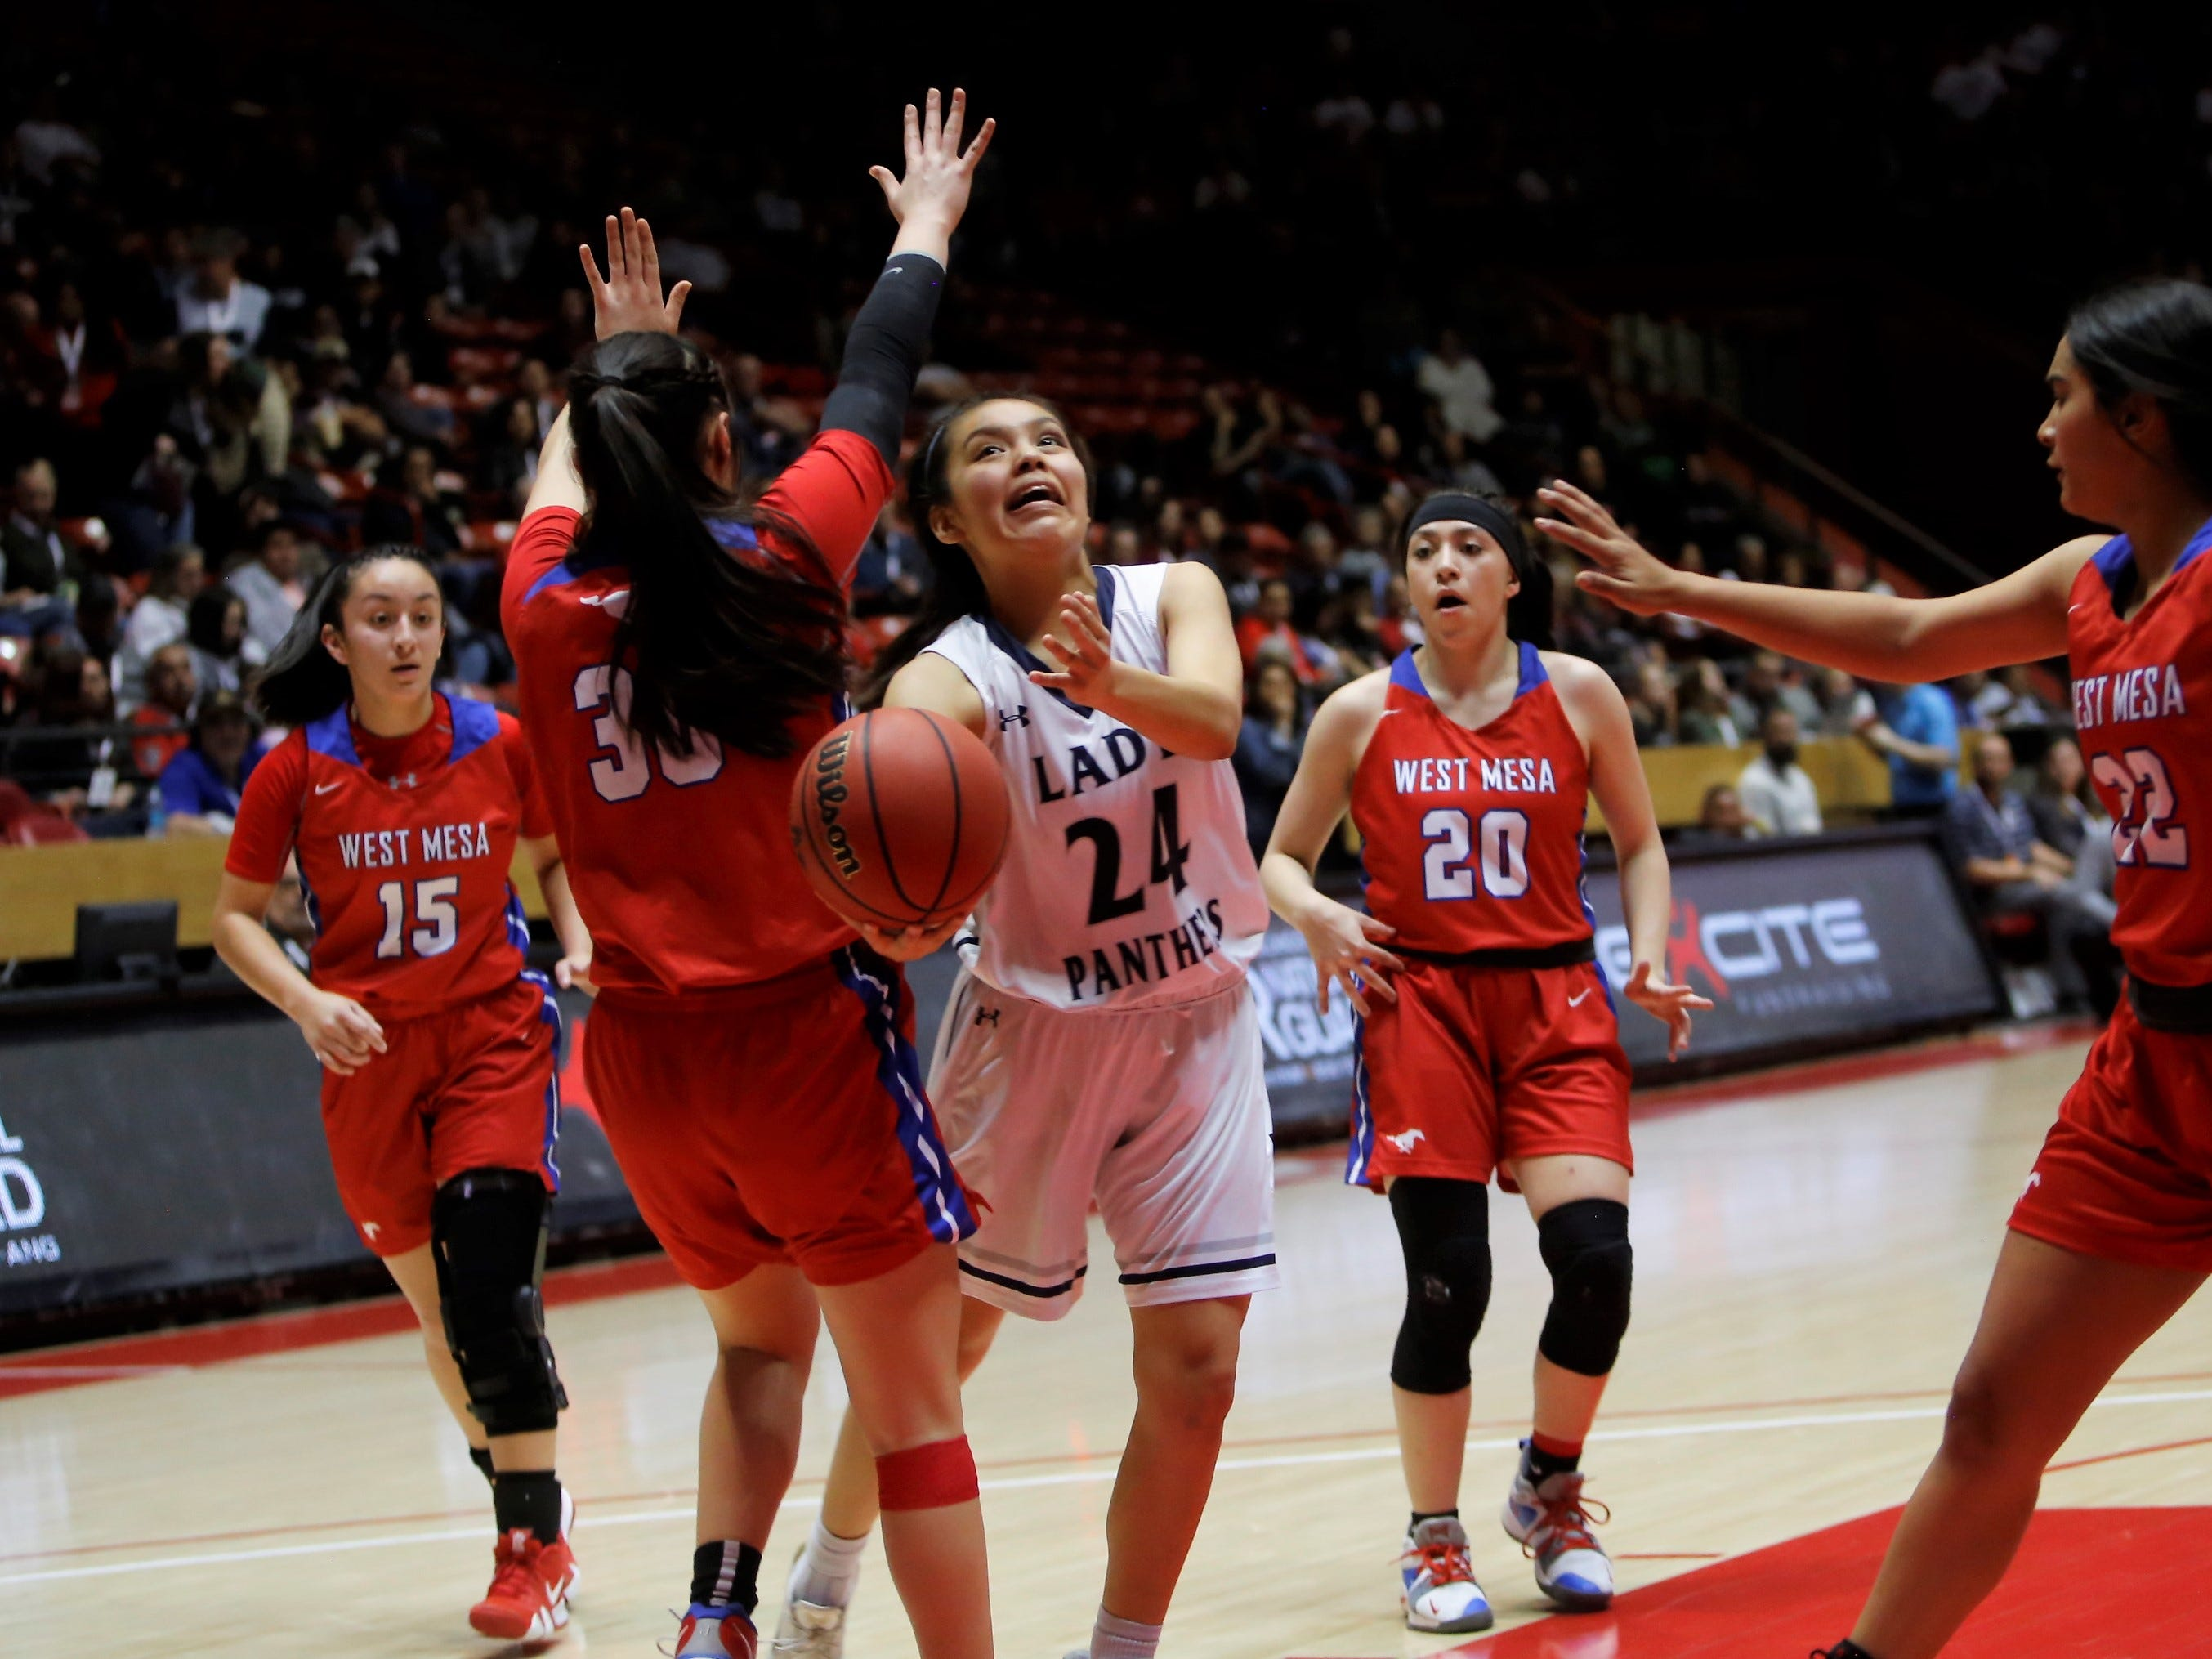 Piedra Vista's Tai Tai Woods attacks the basket and gets fouled by West Mesa's Jazmine Cordova (30) during Thursday's 5A state semifinals game at Dreamstyle Arena in Albuquerque.